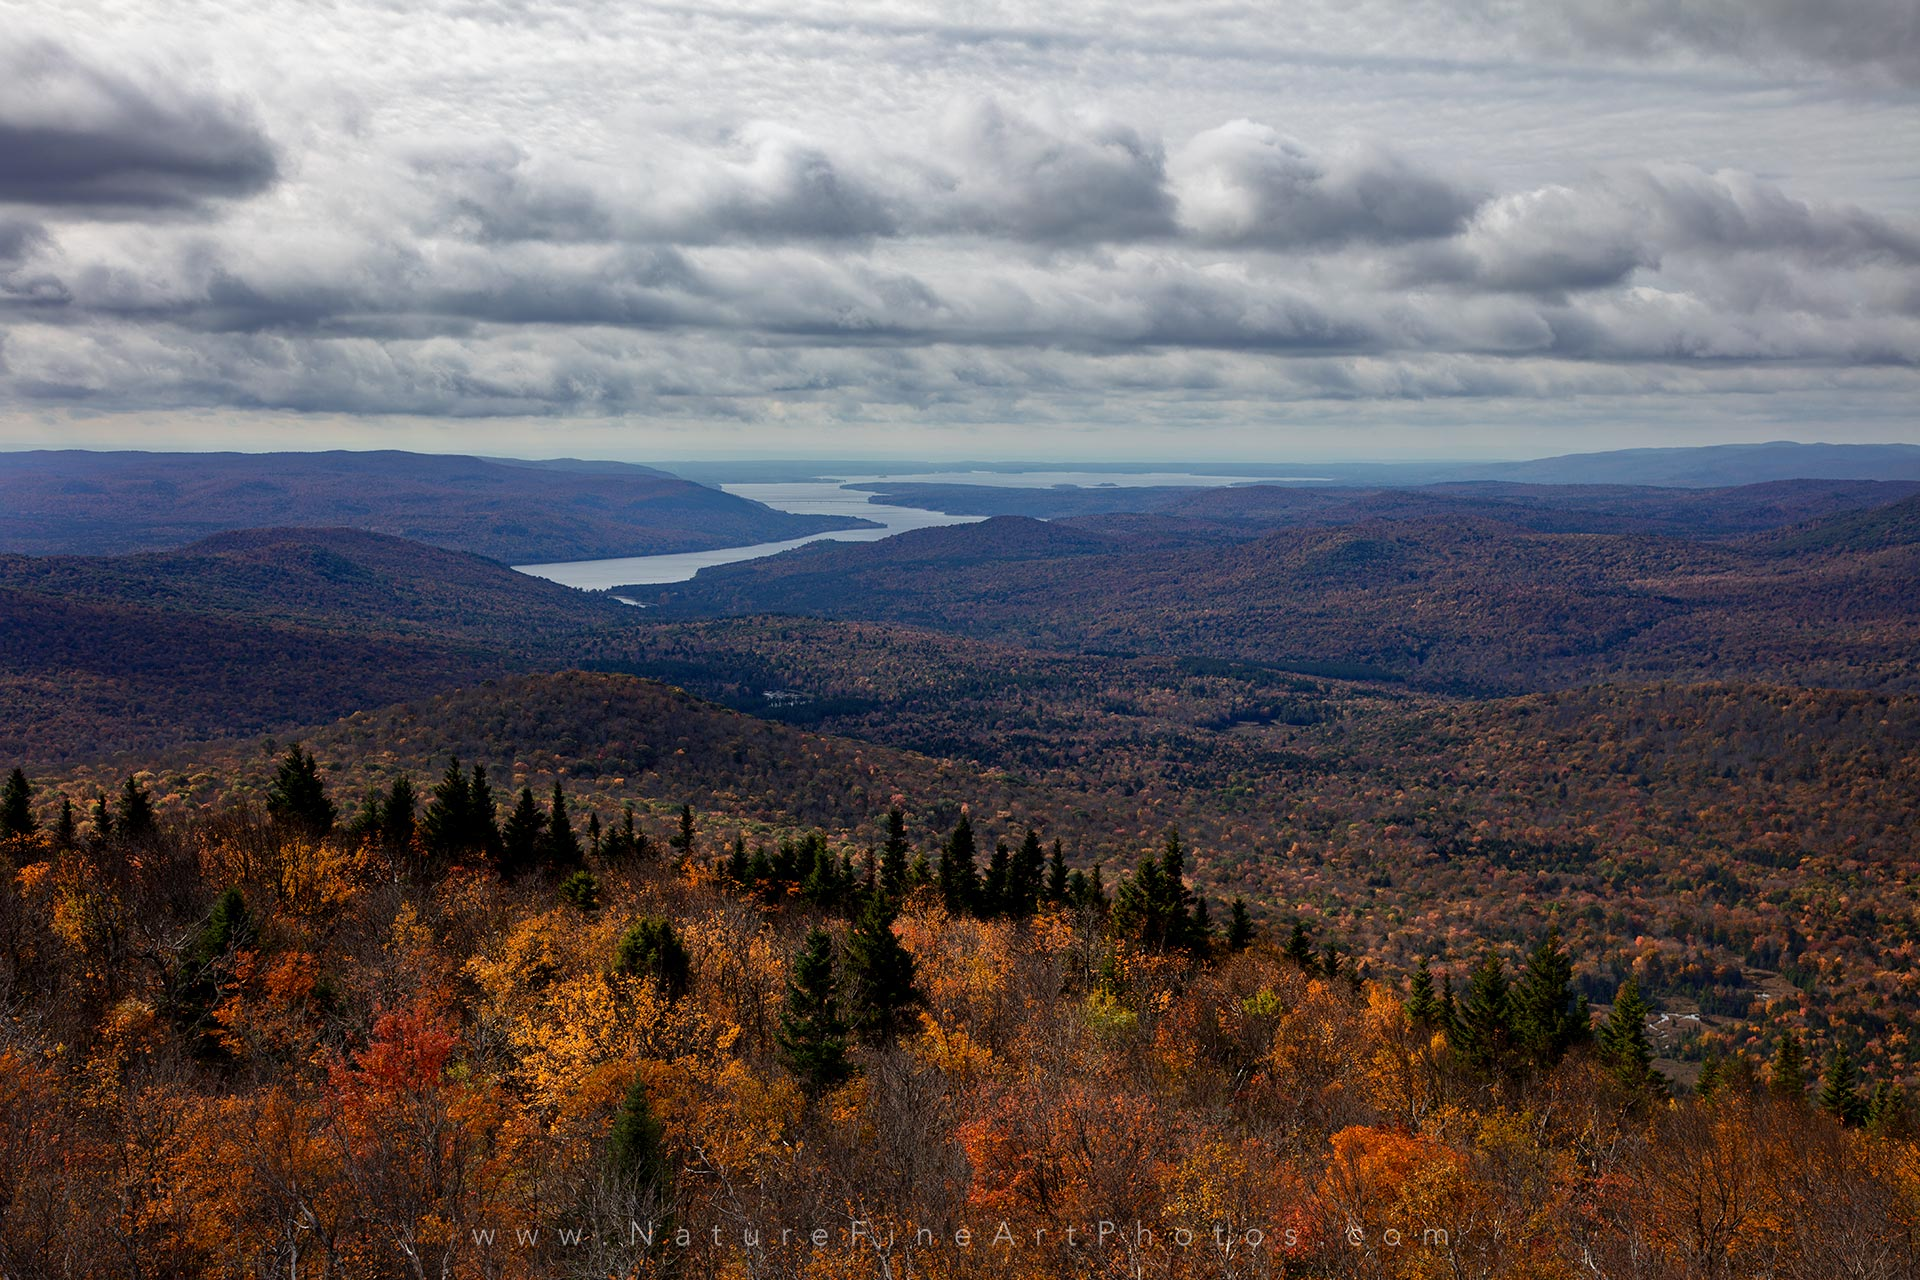 Mount Hadley during fall foliage